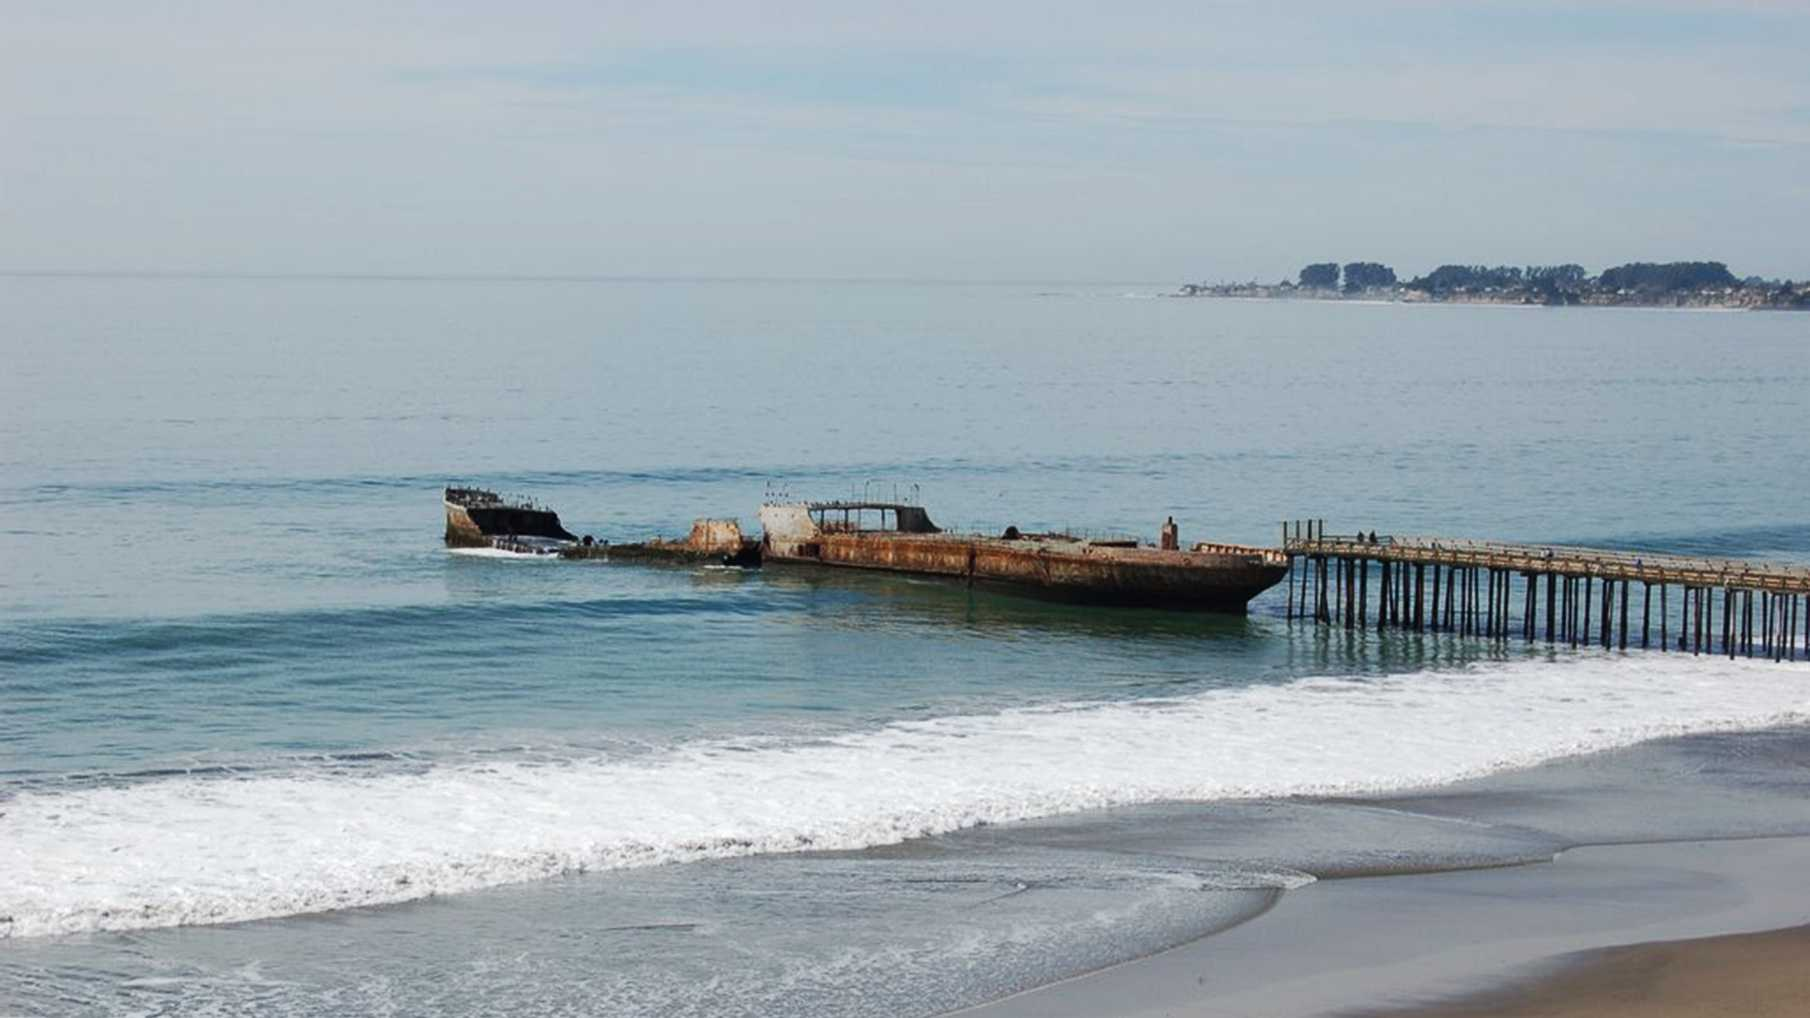 Cement ship before the storm